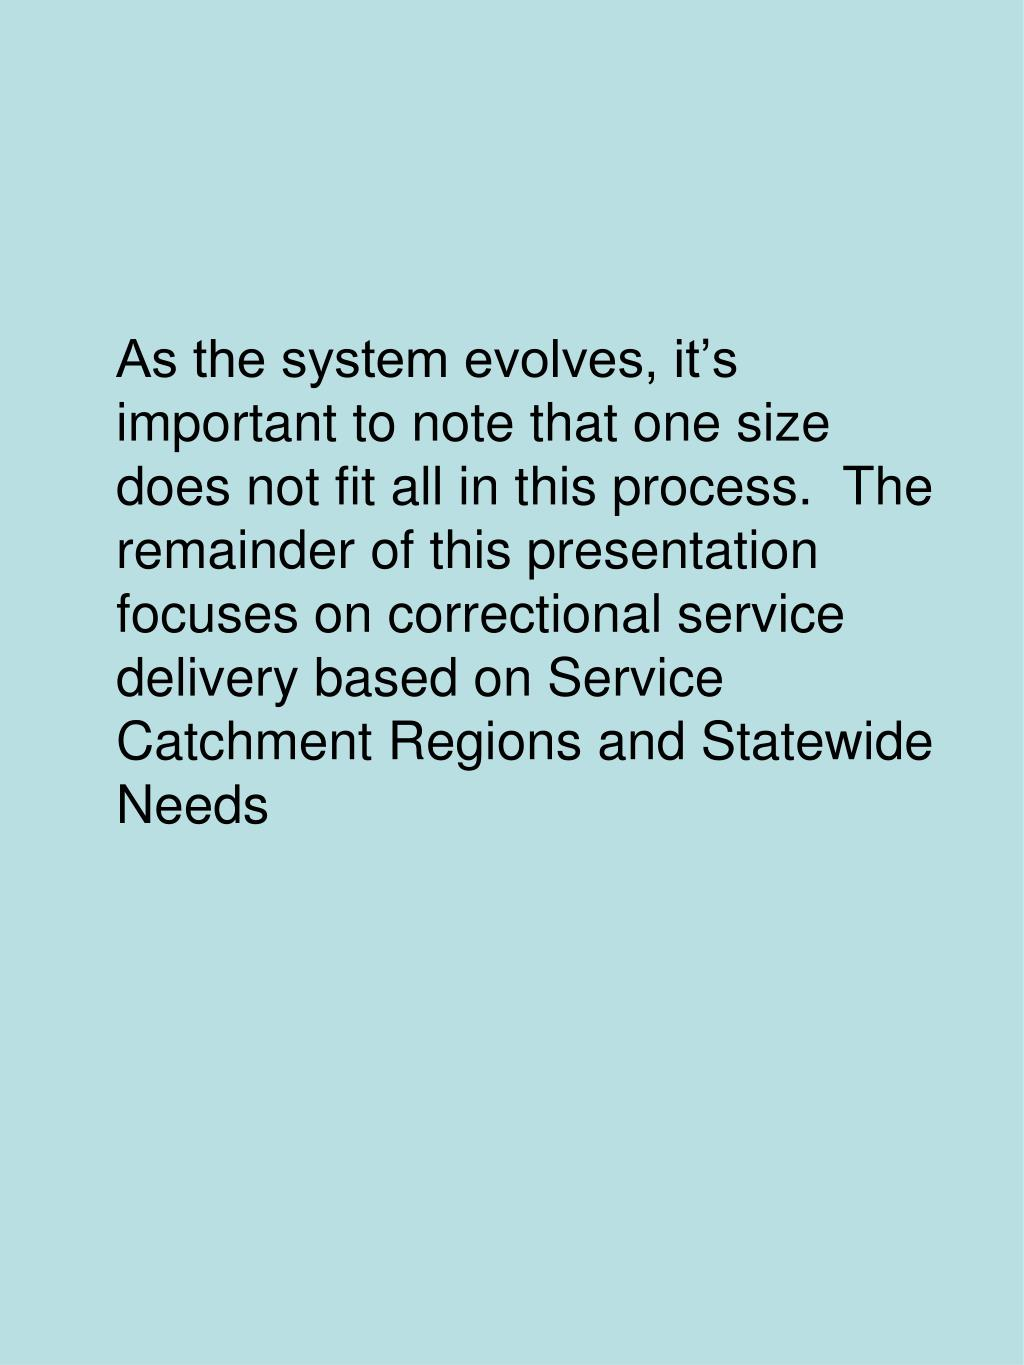 As the system evolves, it's important to note that one size does not fit all in this process.  The remainder of this presentation focuses on correctional service delivery based on Service Catchment Regions and Statewide Needs